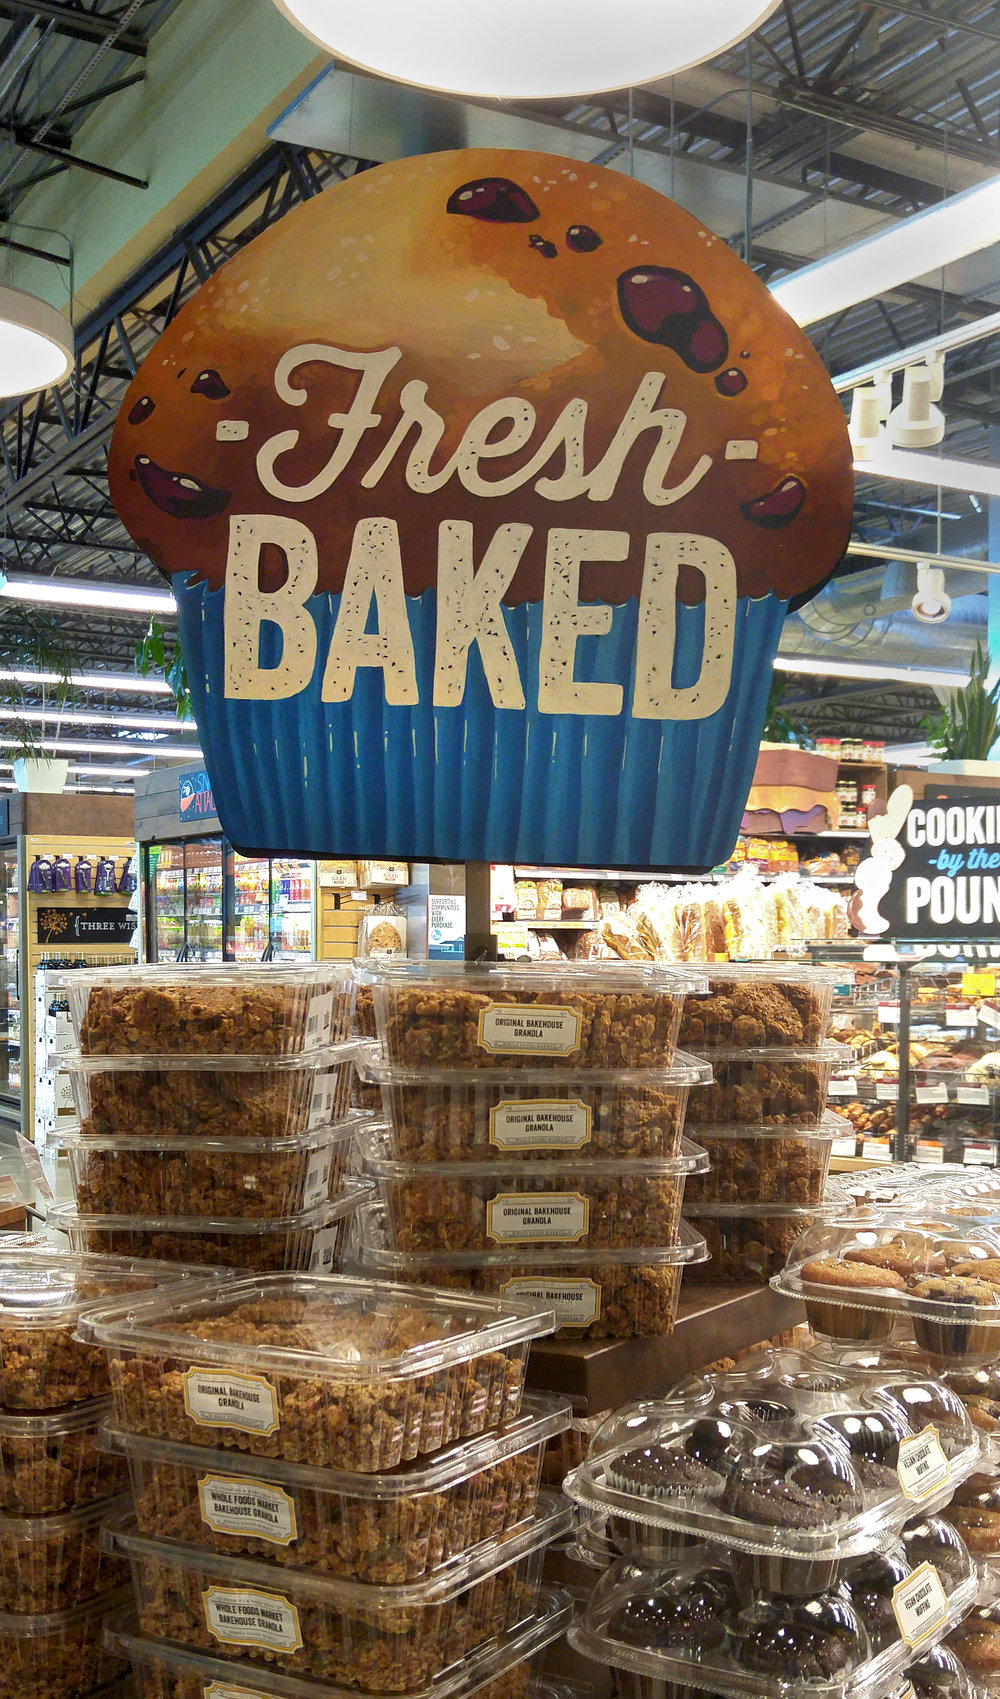 Fresh Baked - Illustrated Product Signage